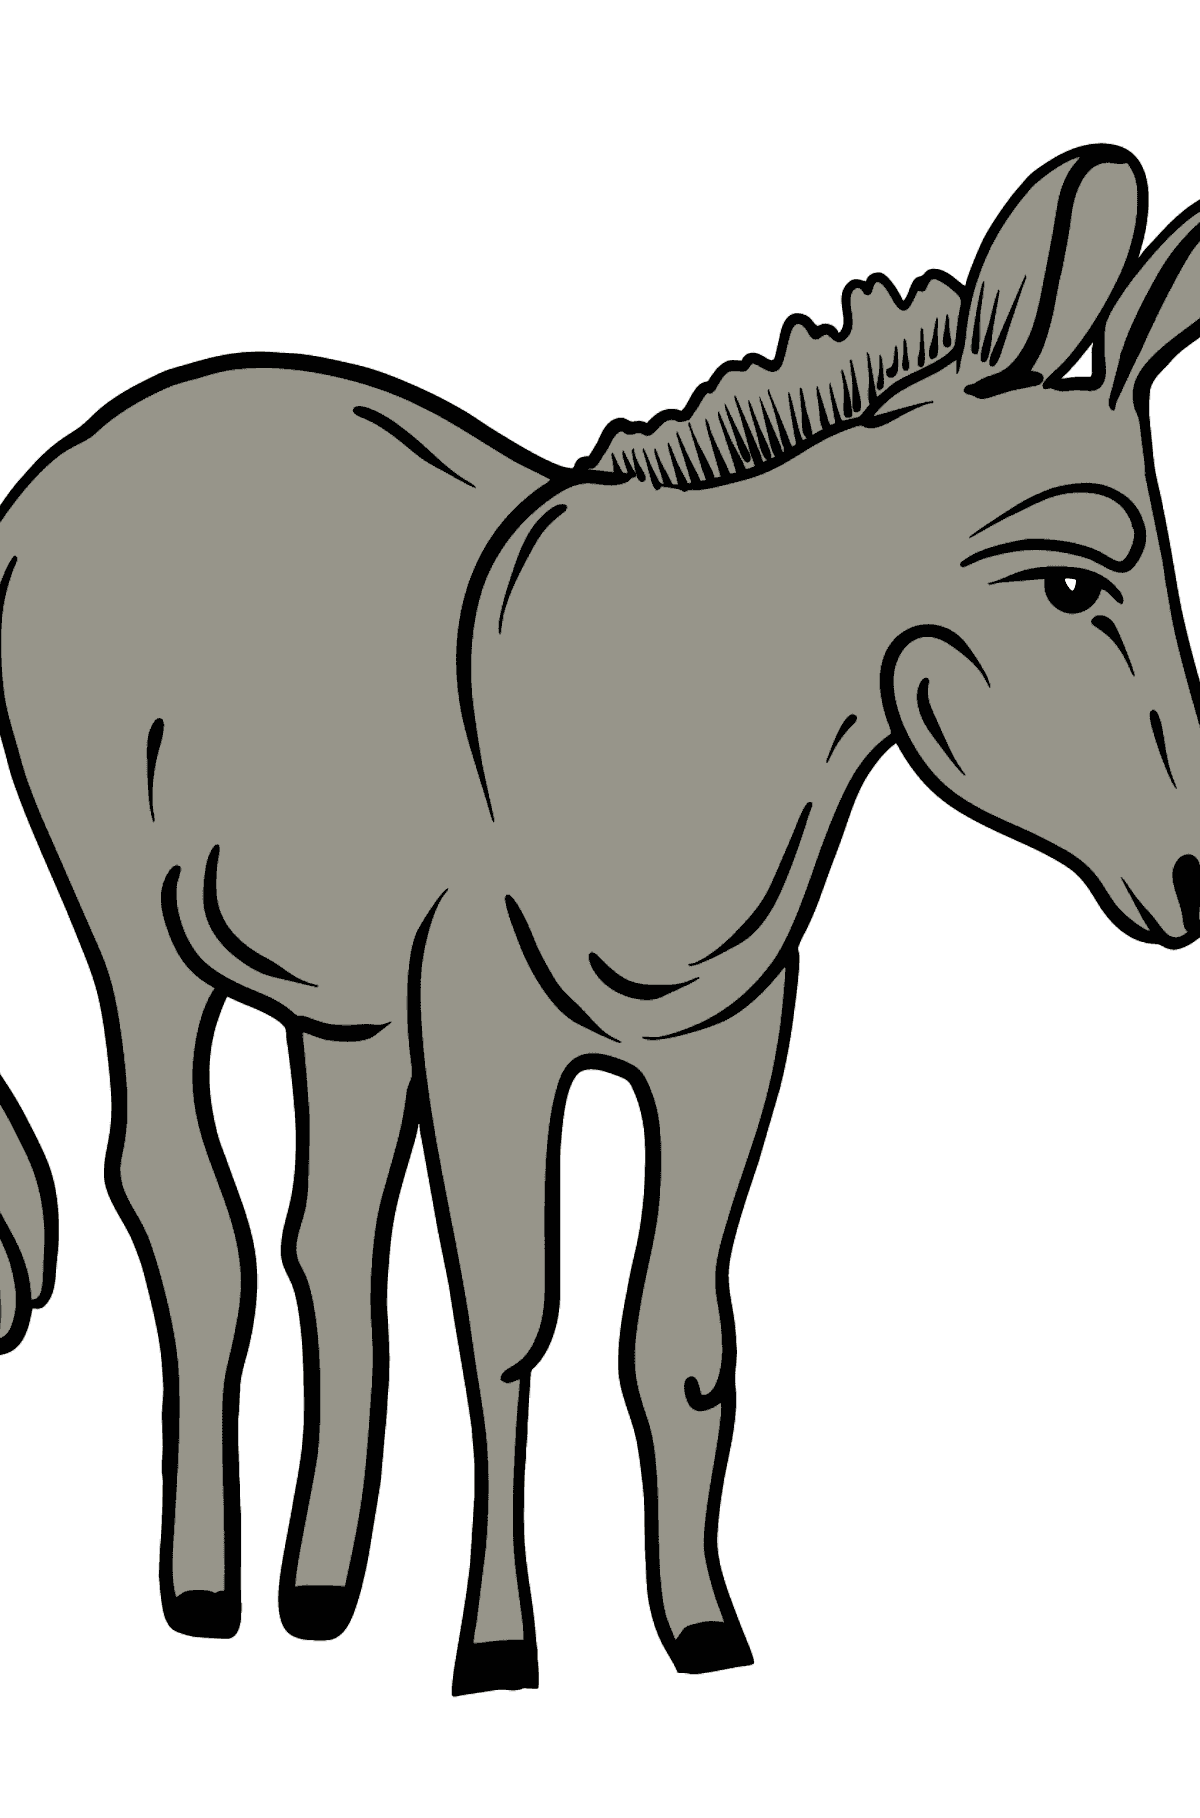 Donkey coloring page - Coloring Pages for Kids